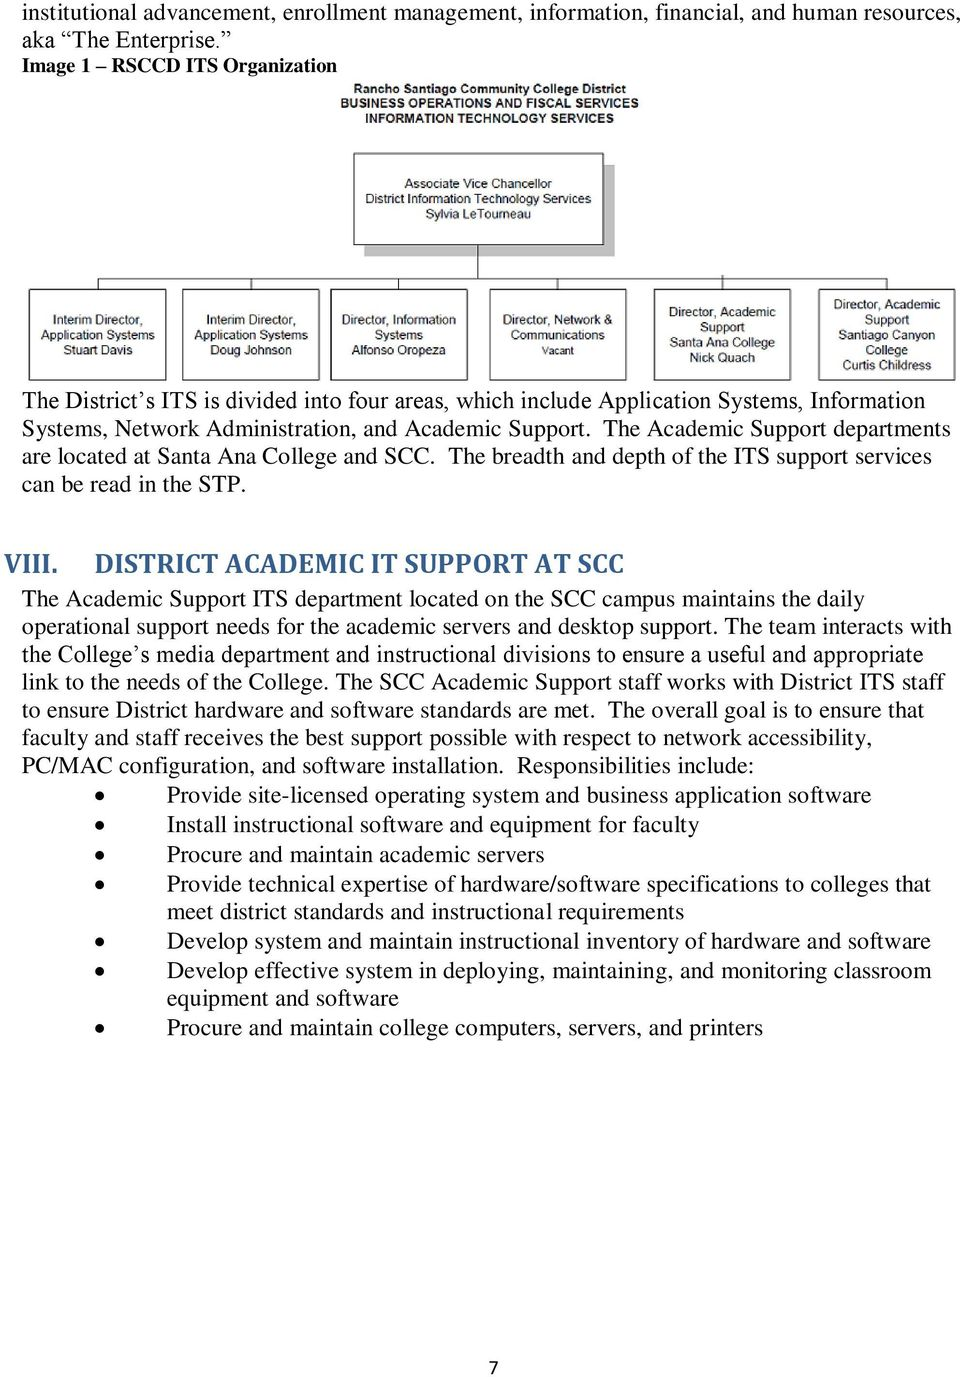 The Academic Support departments are located at Santa Ana College and SCC. The breadth and depth of the ITS support services can be read in the STP. VIII.